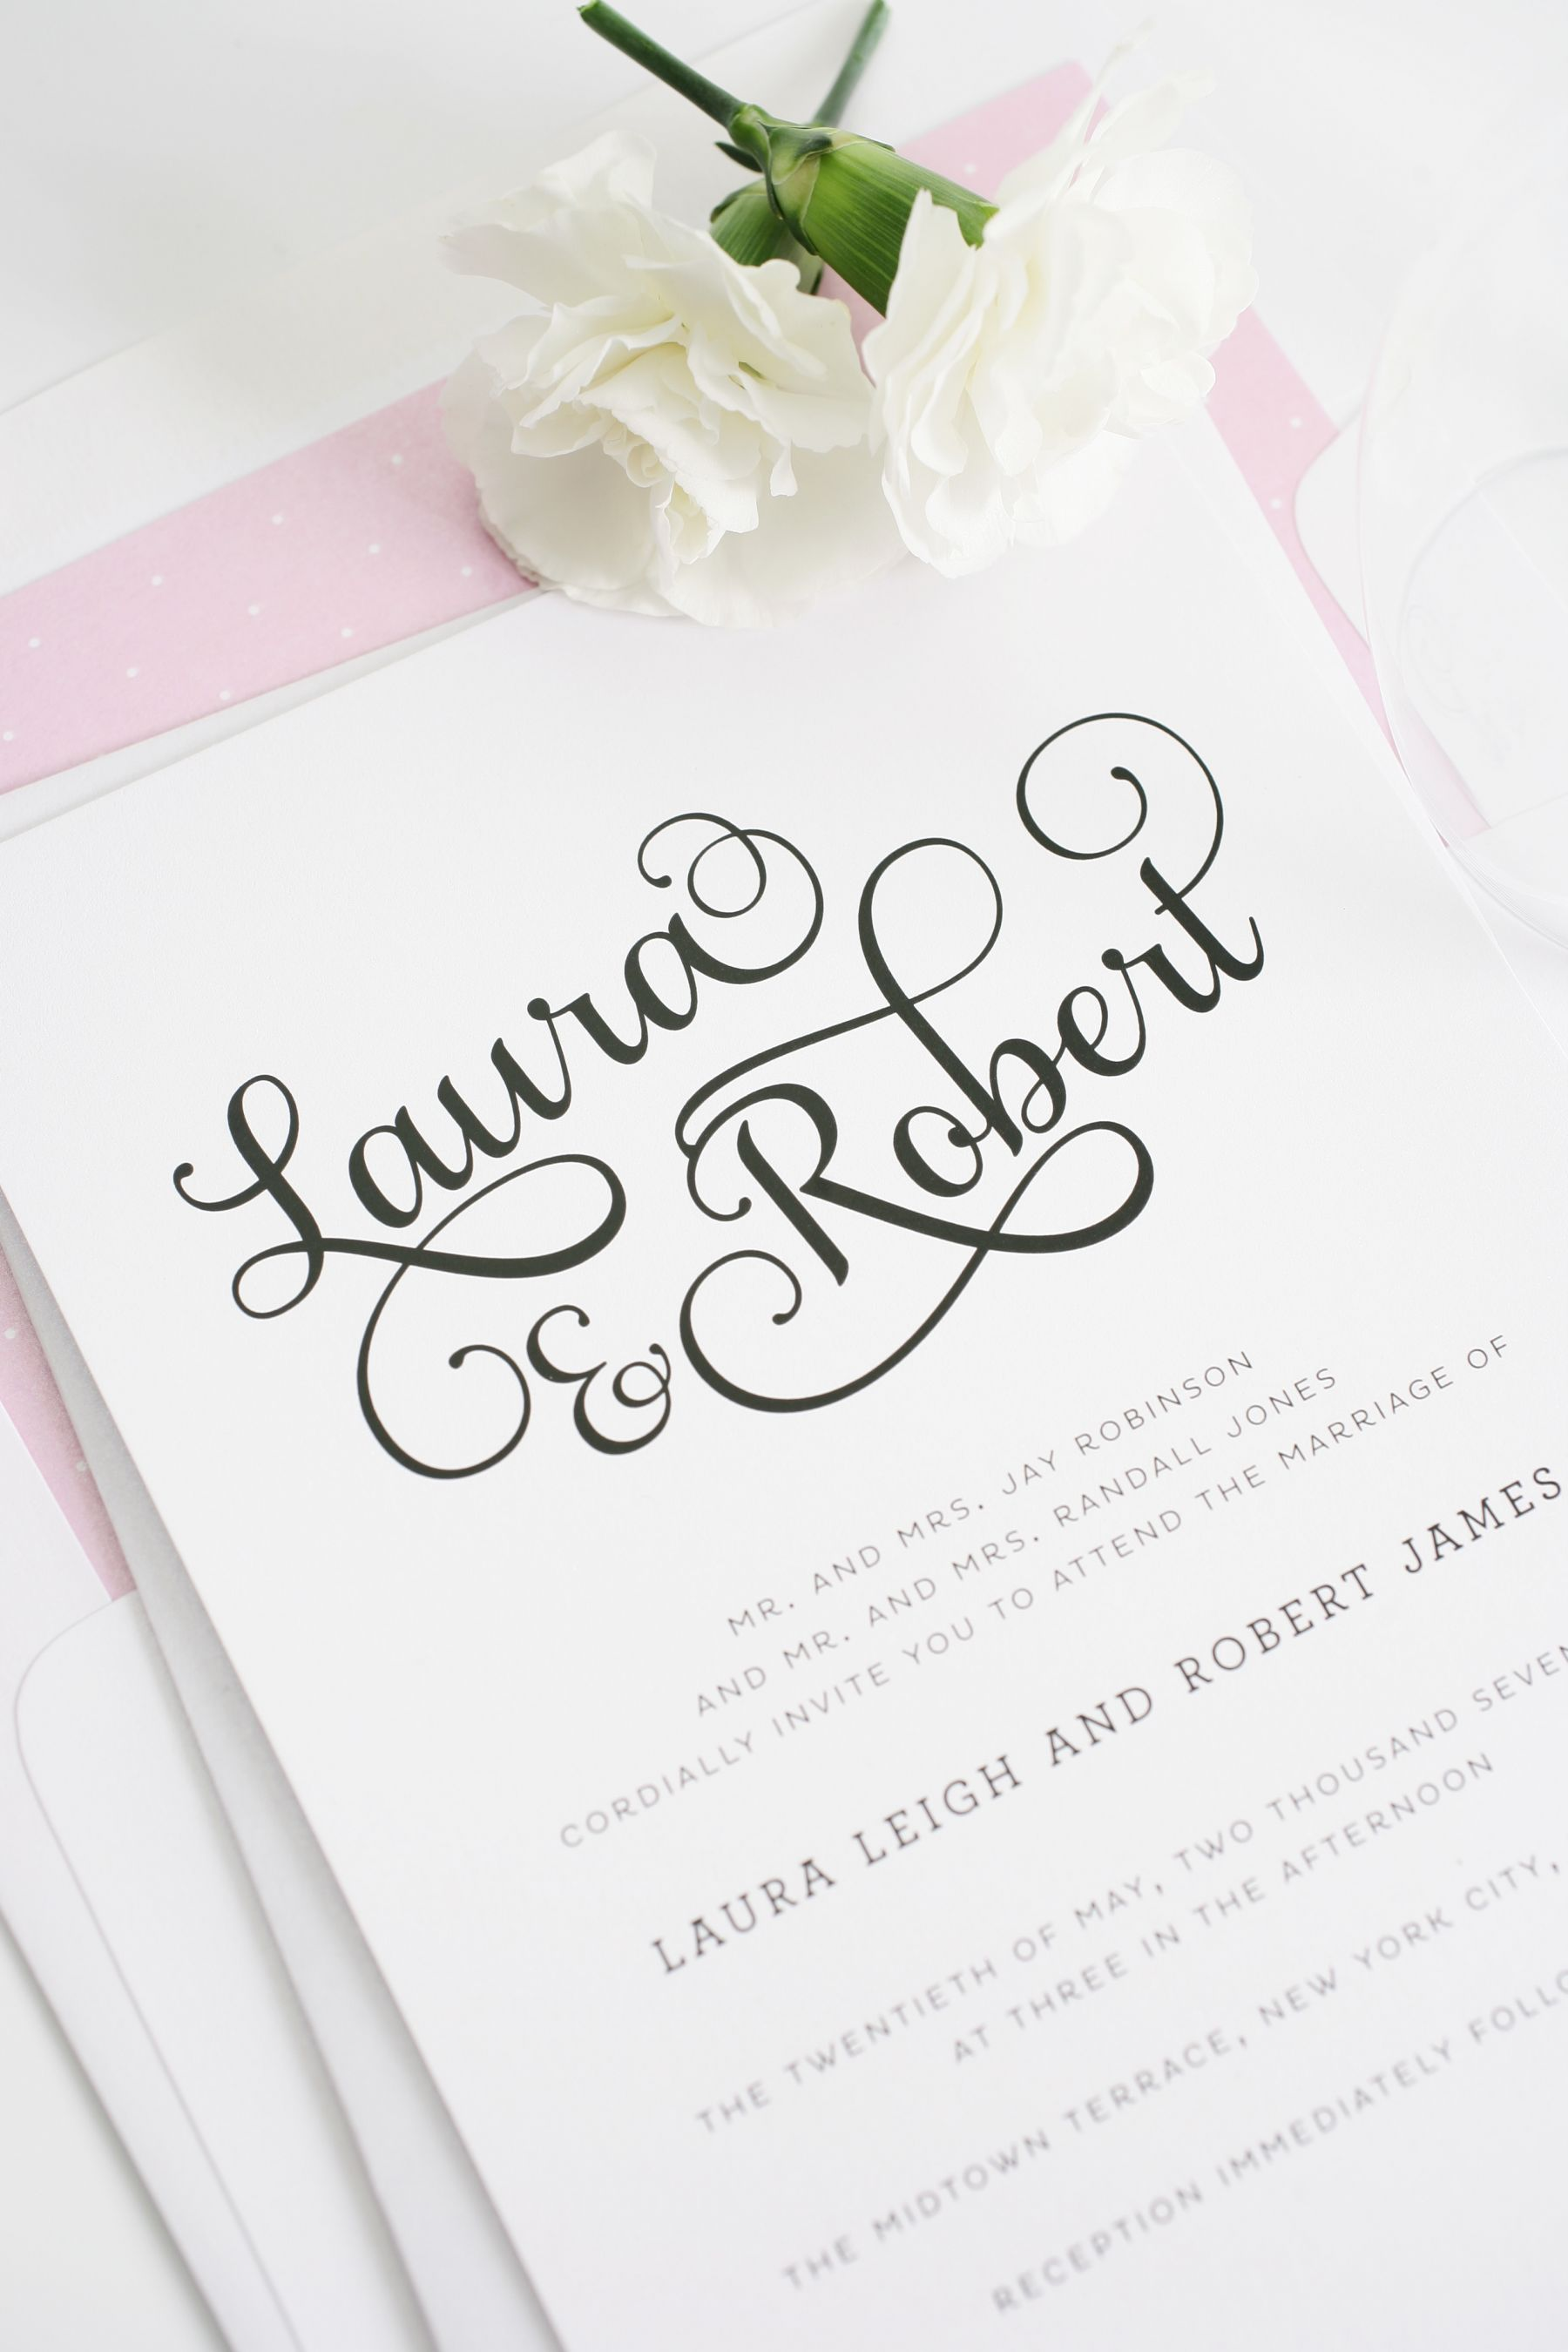 Sweet and romantic wedding invitations with large script wedding polka dot wedding invitations monicamarmolfo Image collections